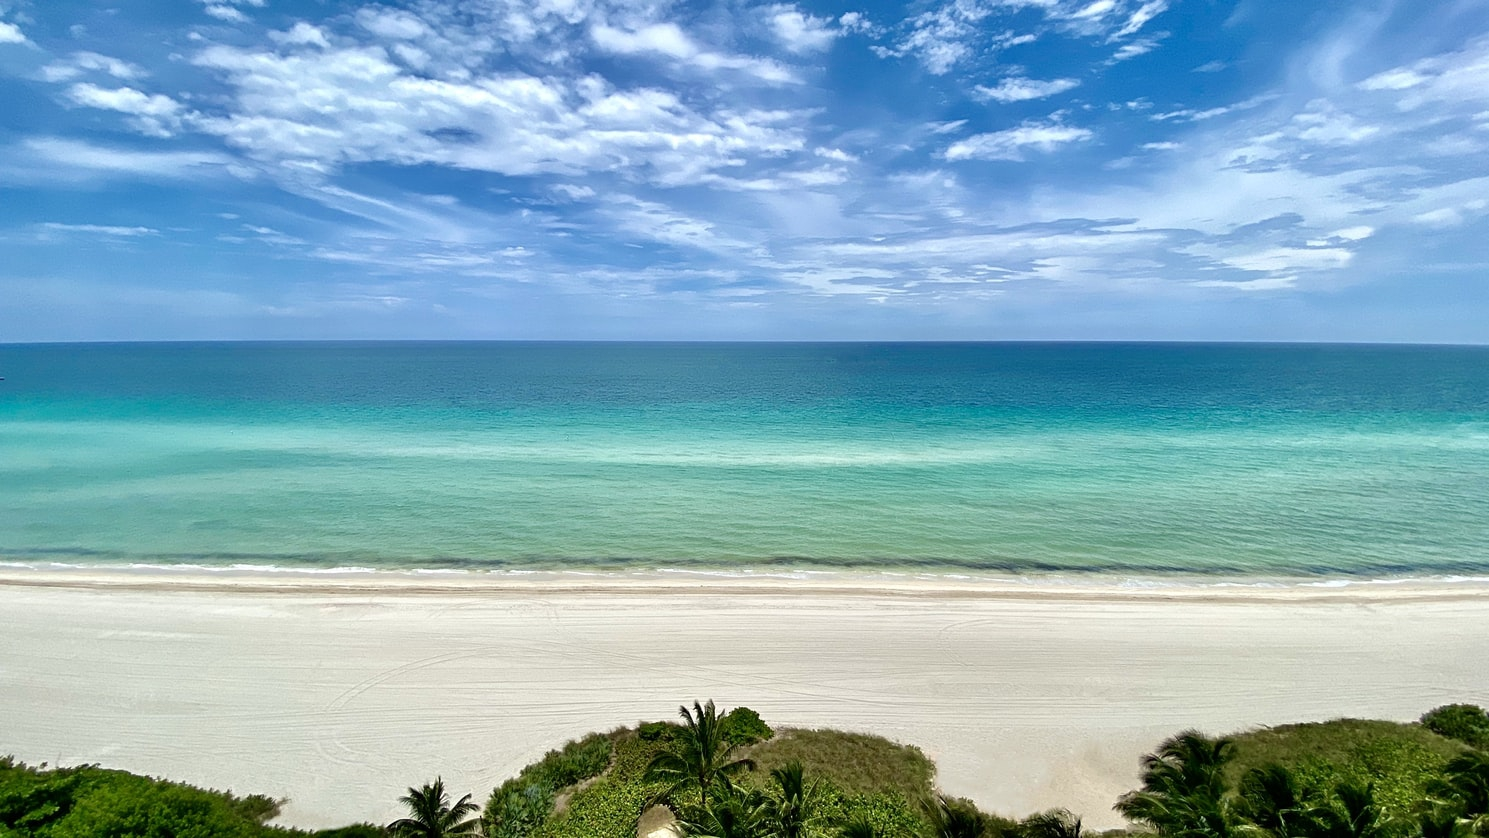 Best Beaches To Relax Close To Nature in Miami